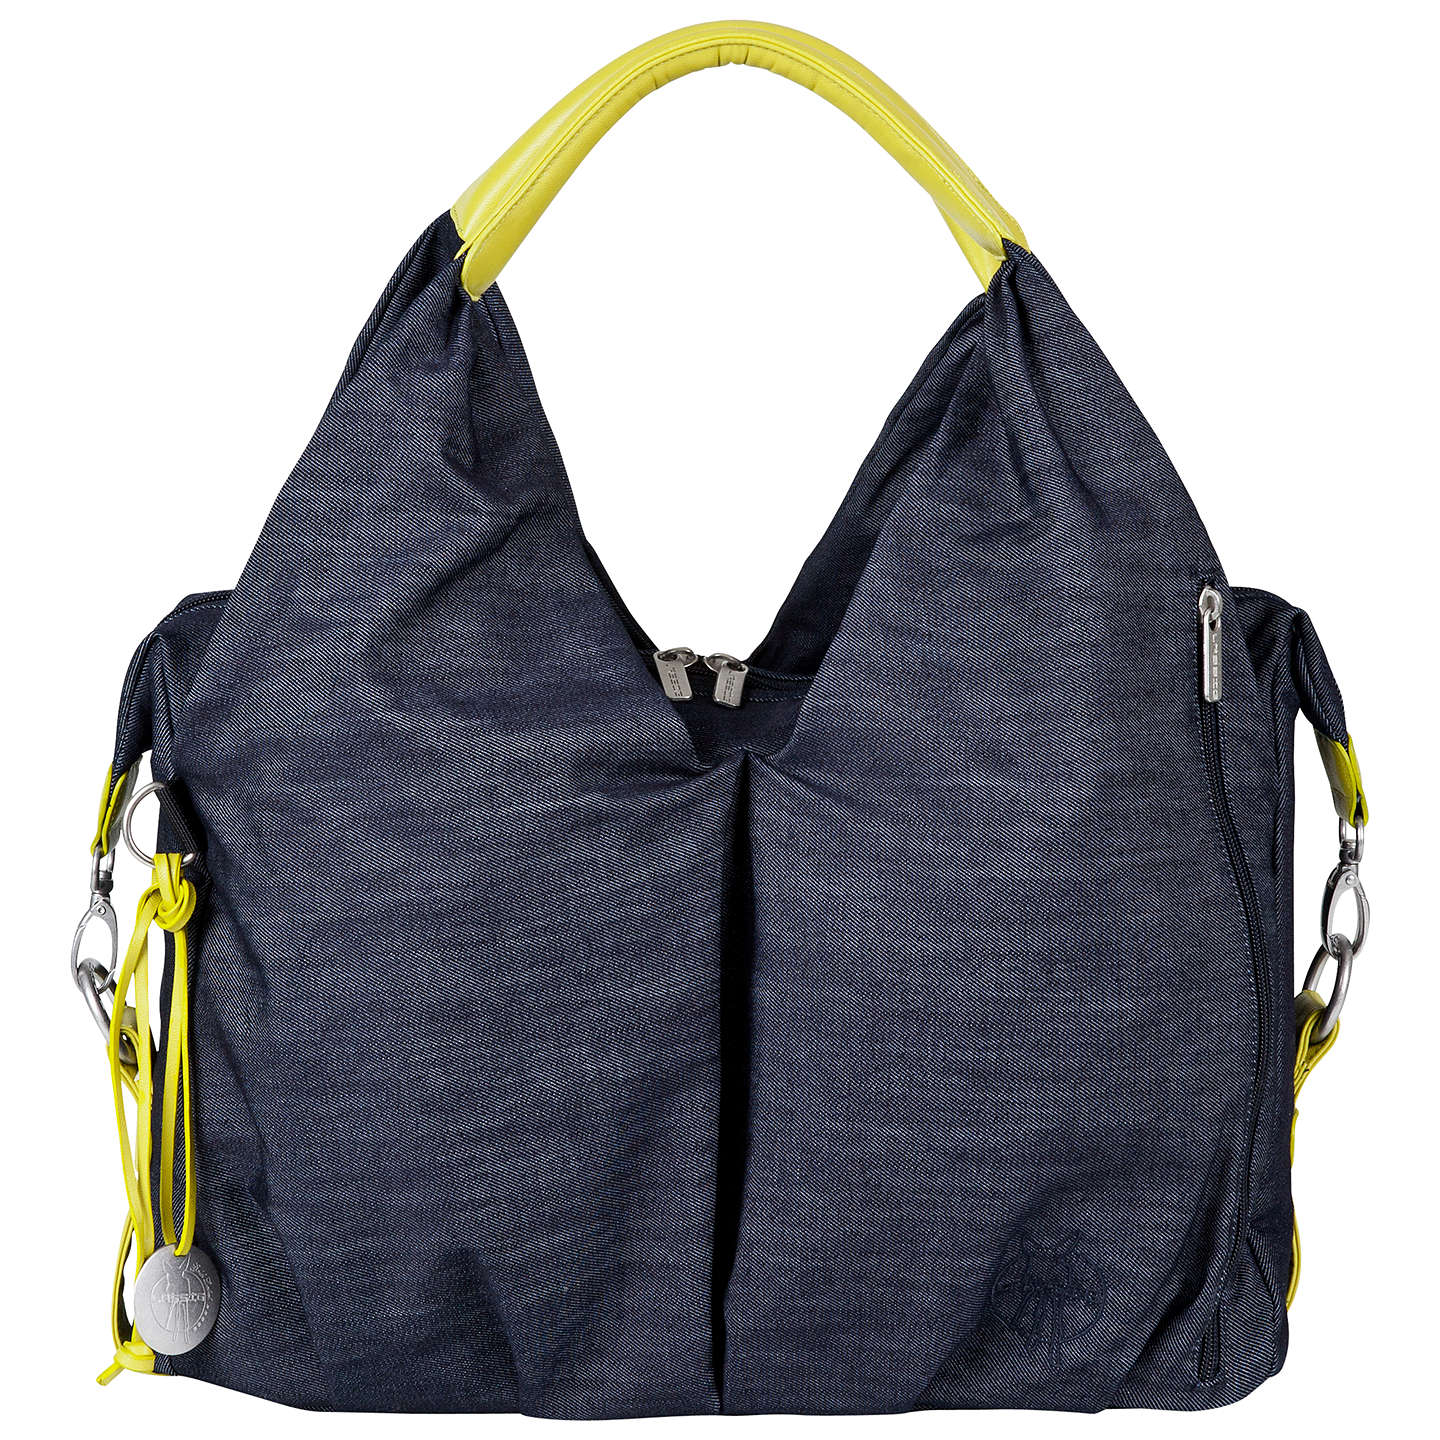 BuyLaessig Neckline Changing Bag, Denim Online at johnlewis.com